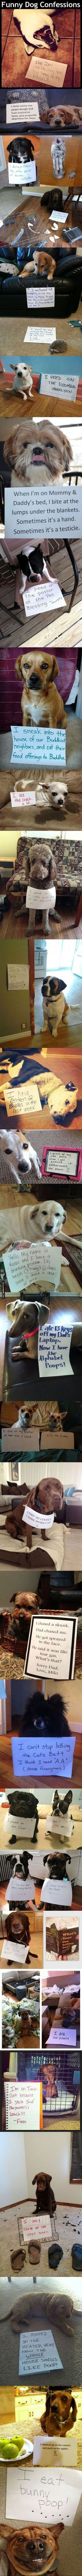 Funny Dog Confessions